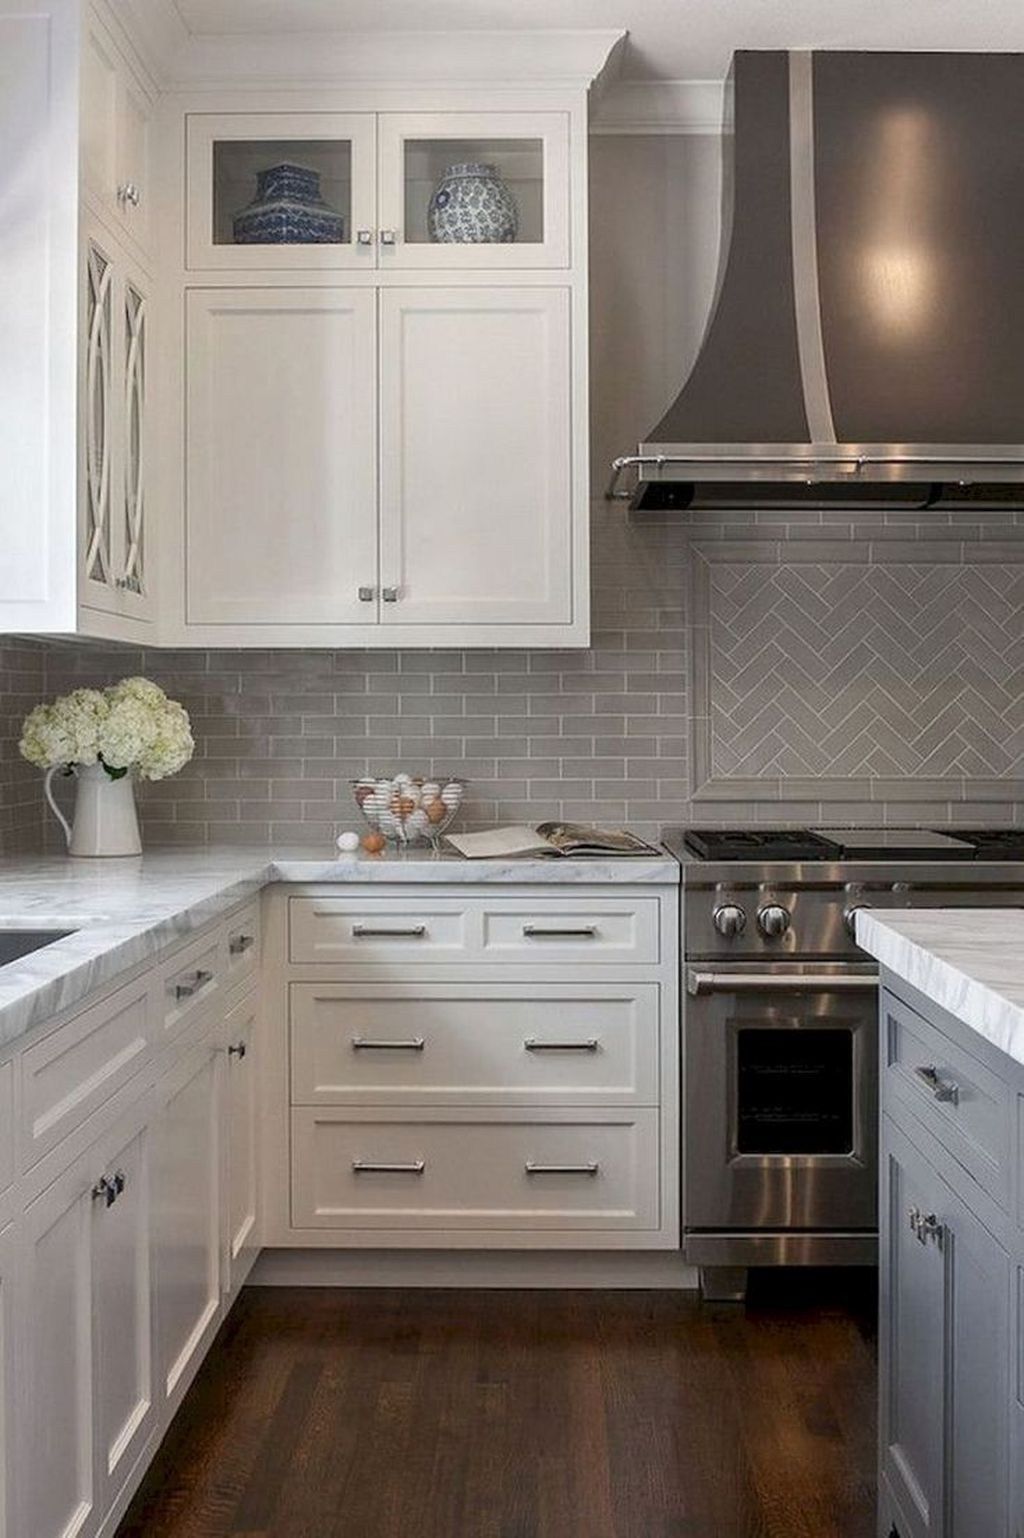 35 The Best White Kitchen Cabinet Design Ideas To Improve Your